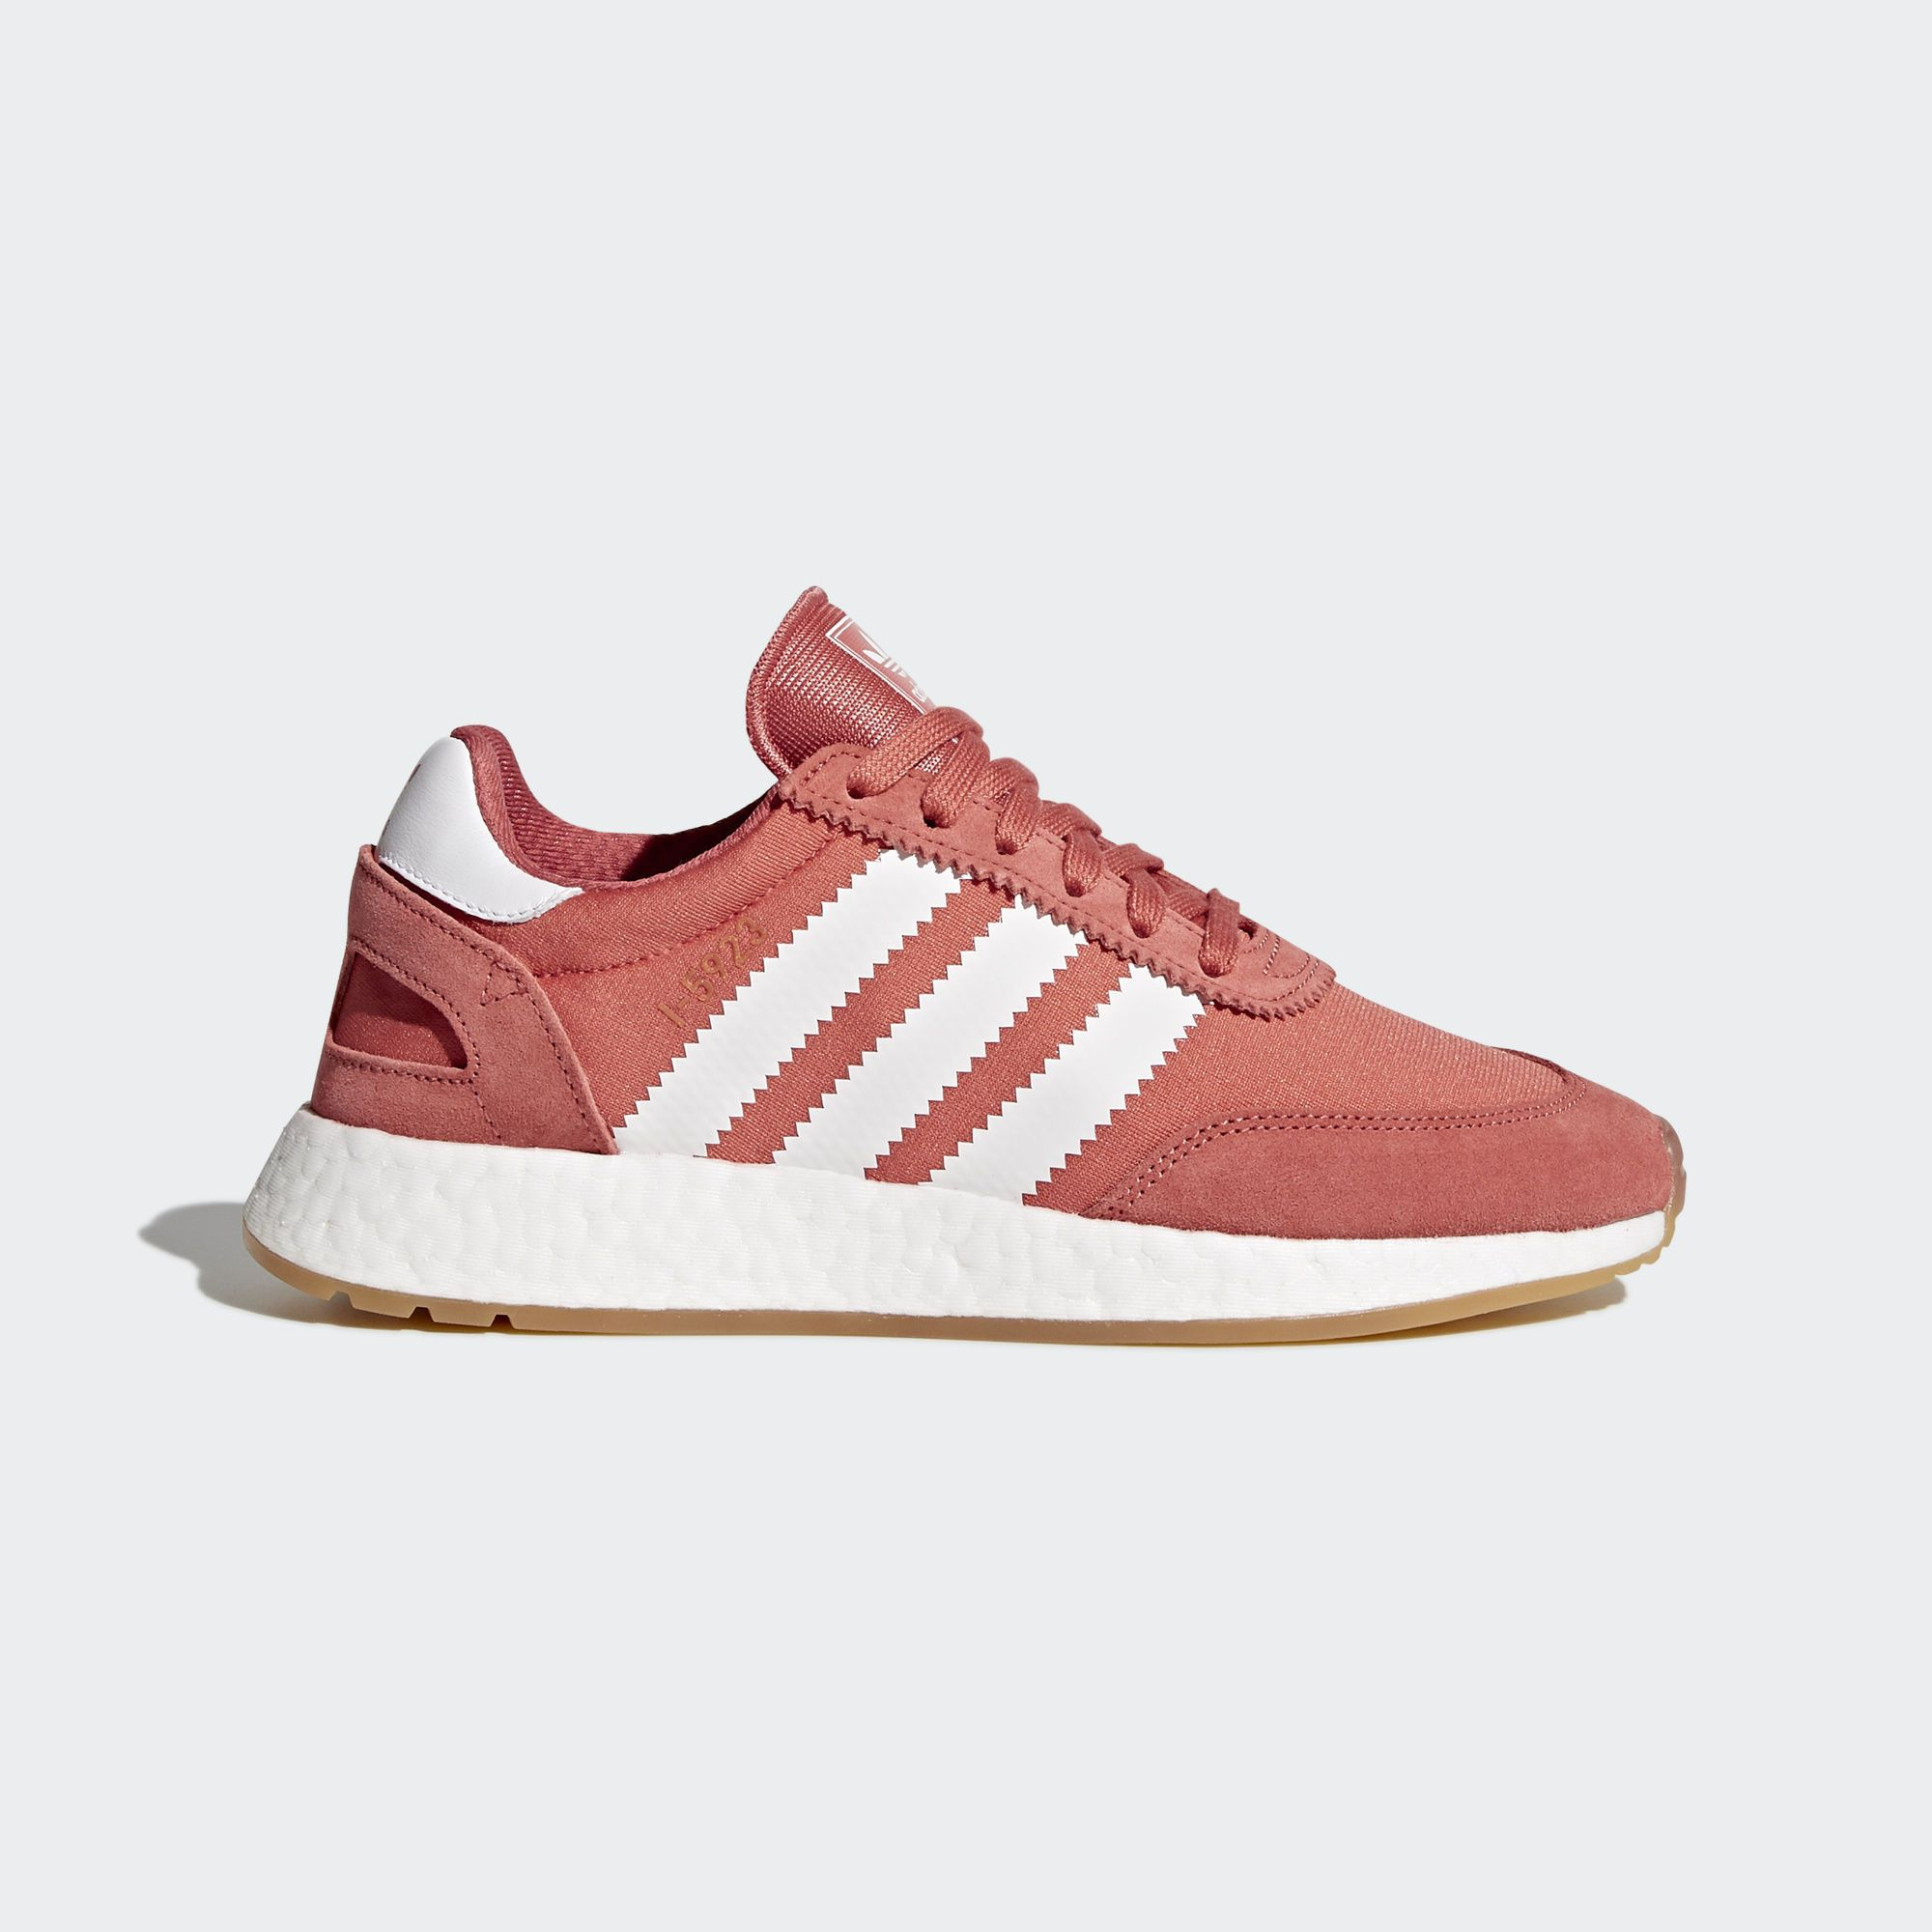 Shop the I-5923 Shoes - Red at adidas.com/us! See